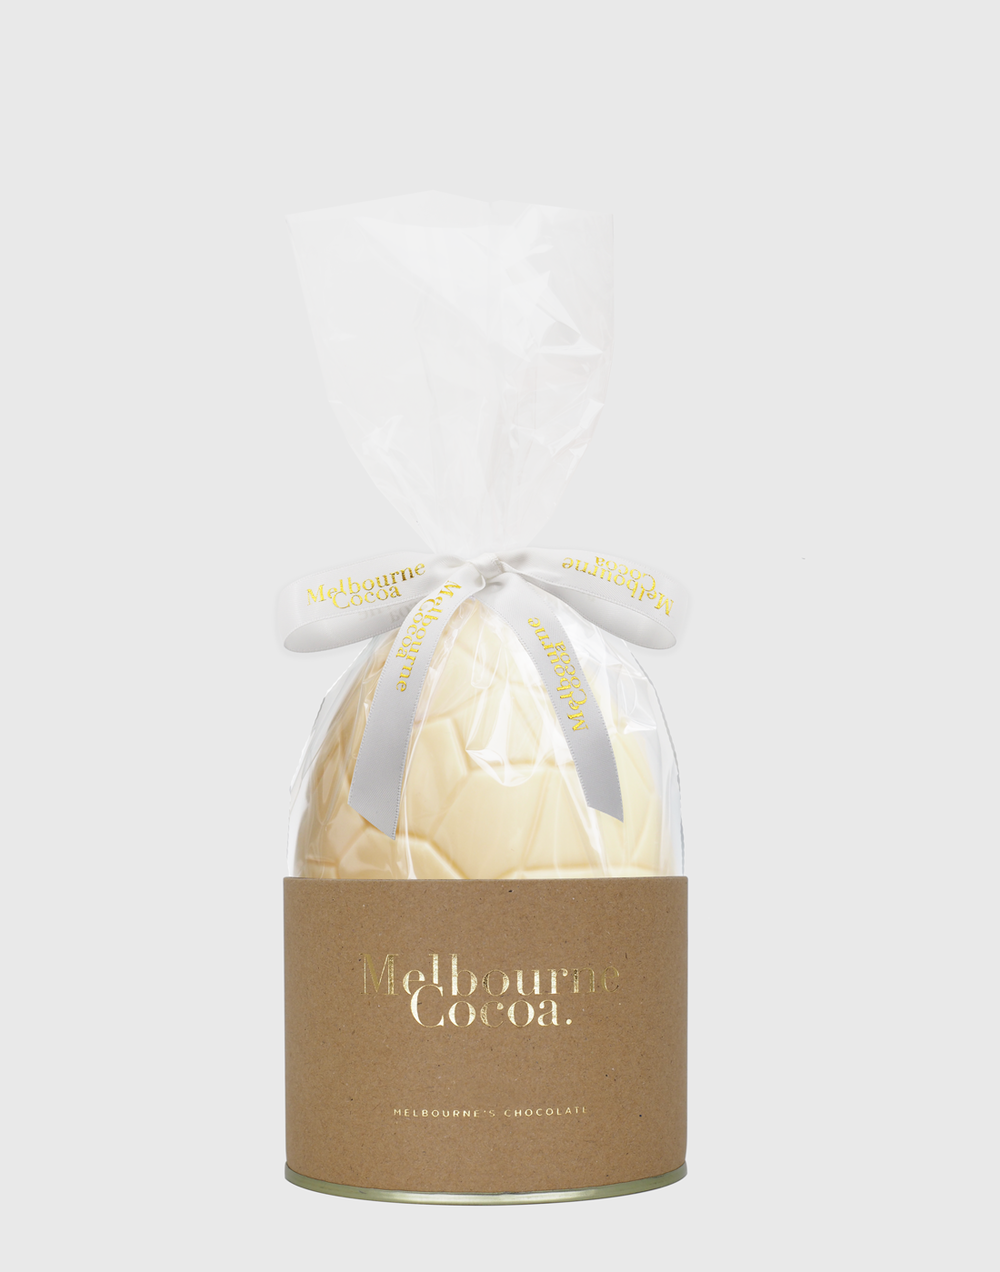 Melbourne Cocoa White Chocolate Egg 150g